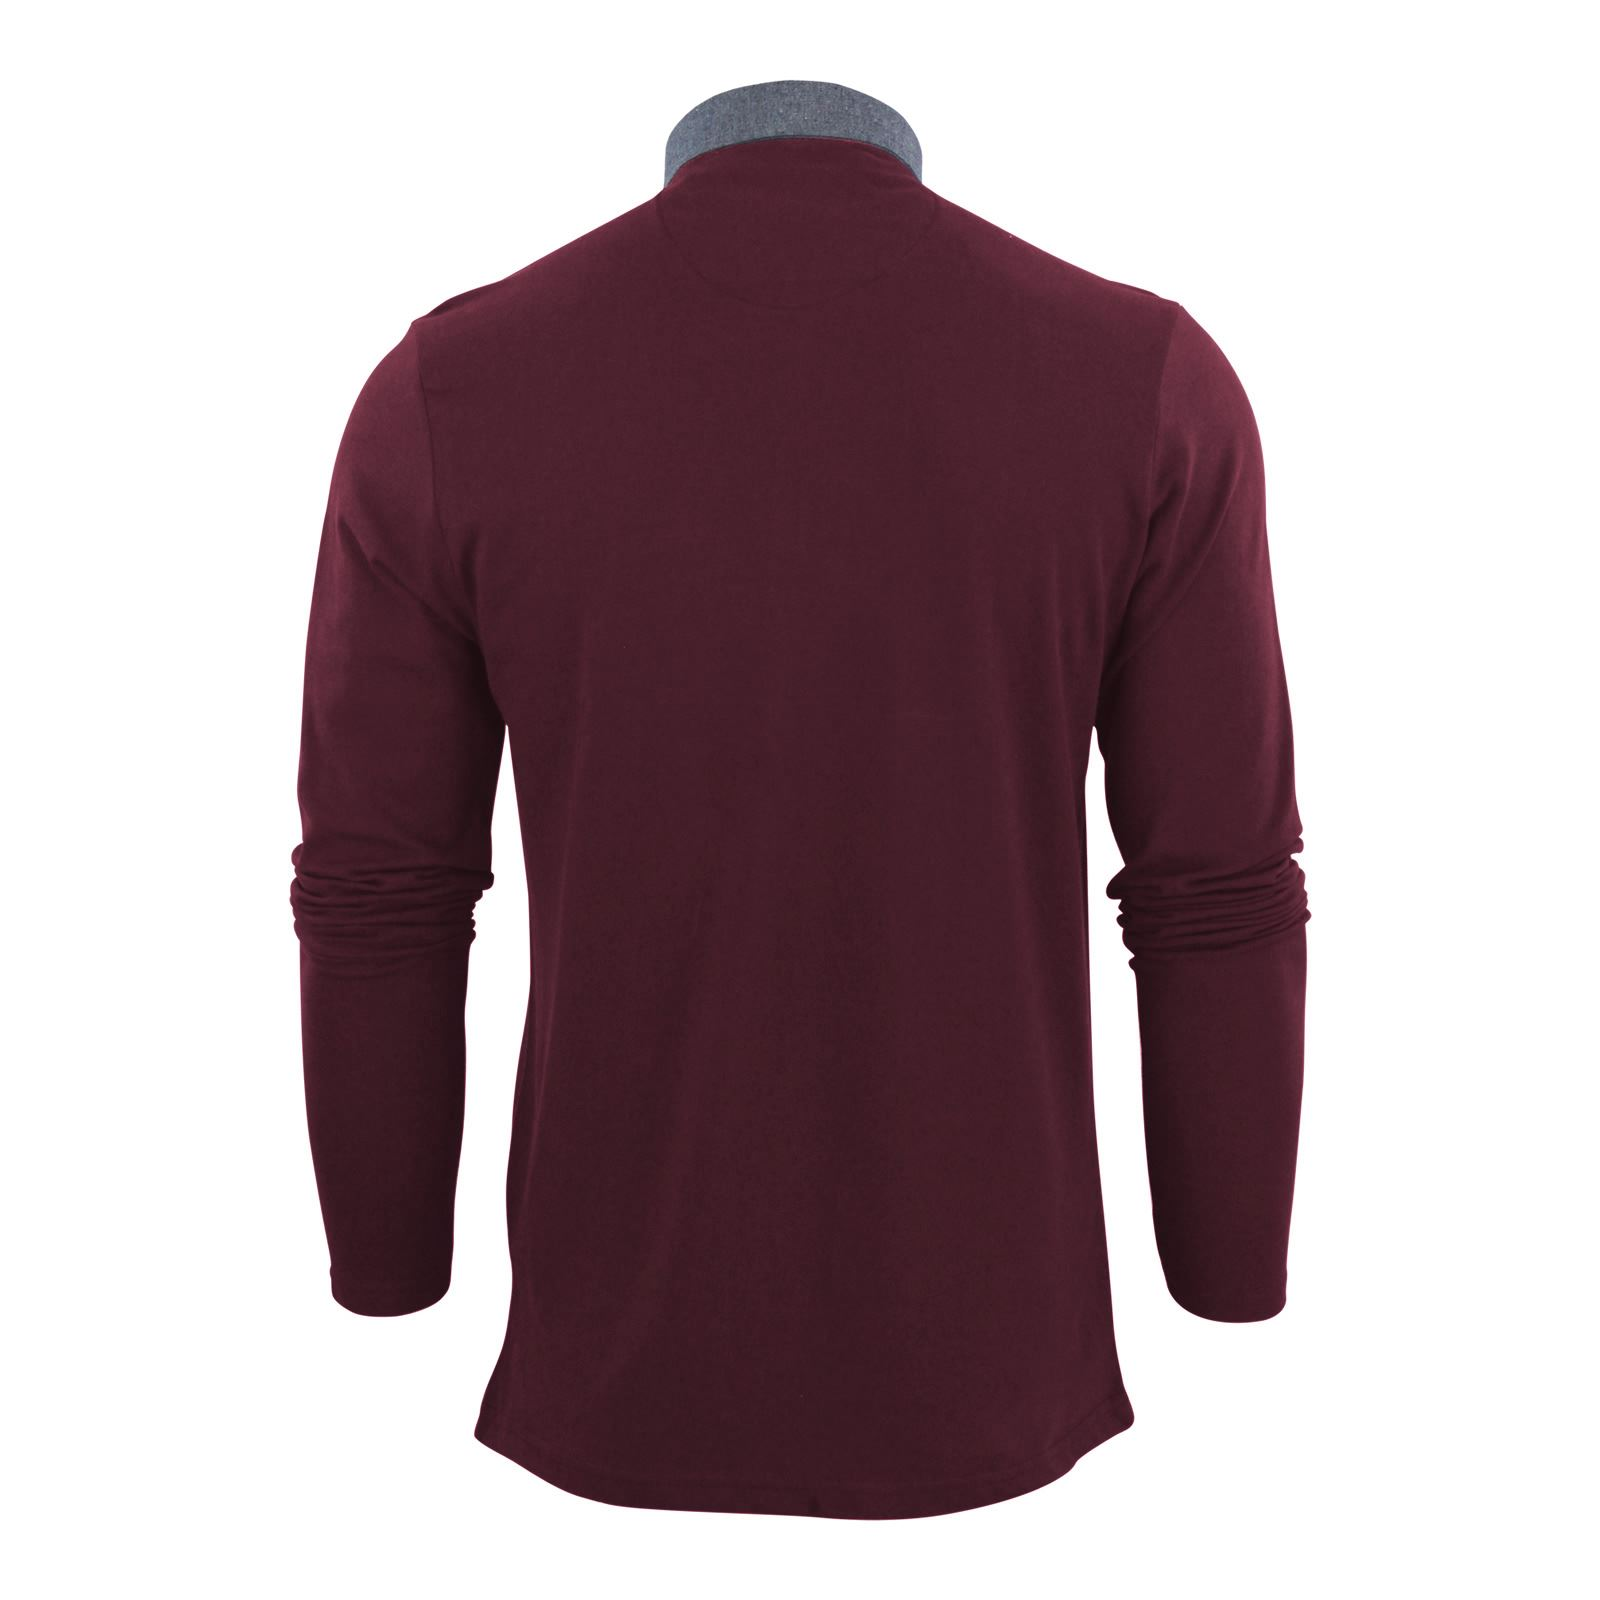 Mens-Polo-T-Shirt-Brave-Soul-Hera-Cotton-Long-Sleeve-Casual-Top thumbnail 33